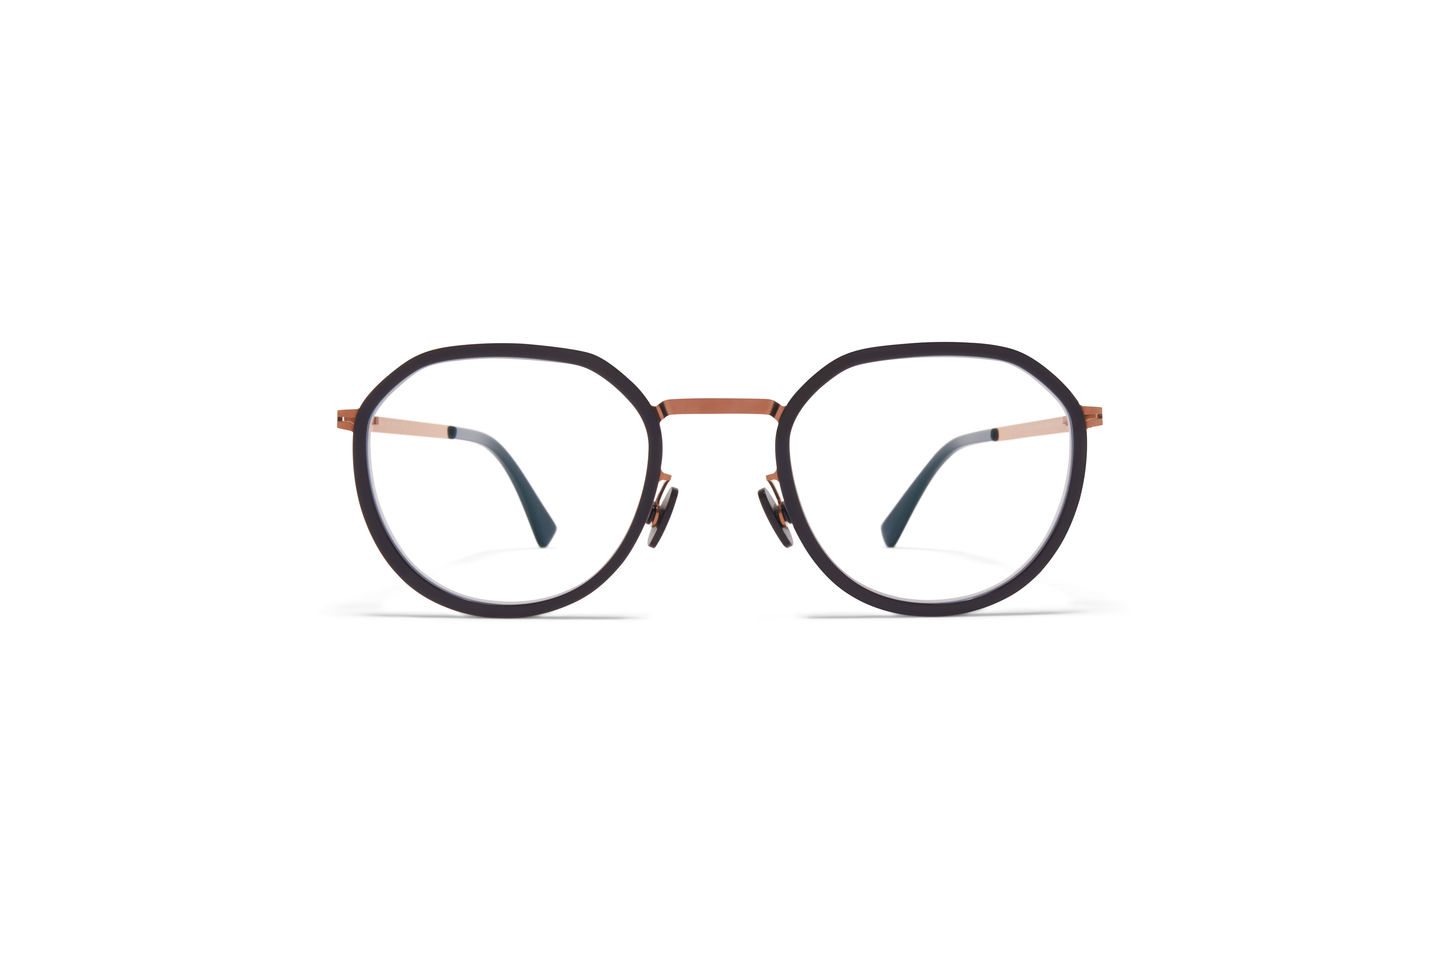 mykita-lite-acetate-rx-justus-a37-shiny-copper-black-clear-1508768-p-2UCUYXrmTOM6Ma.jpg